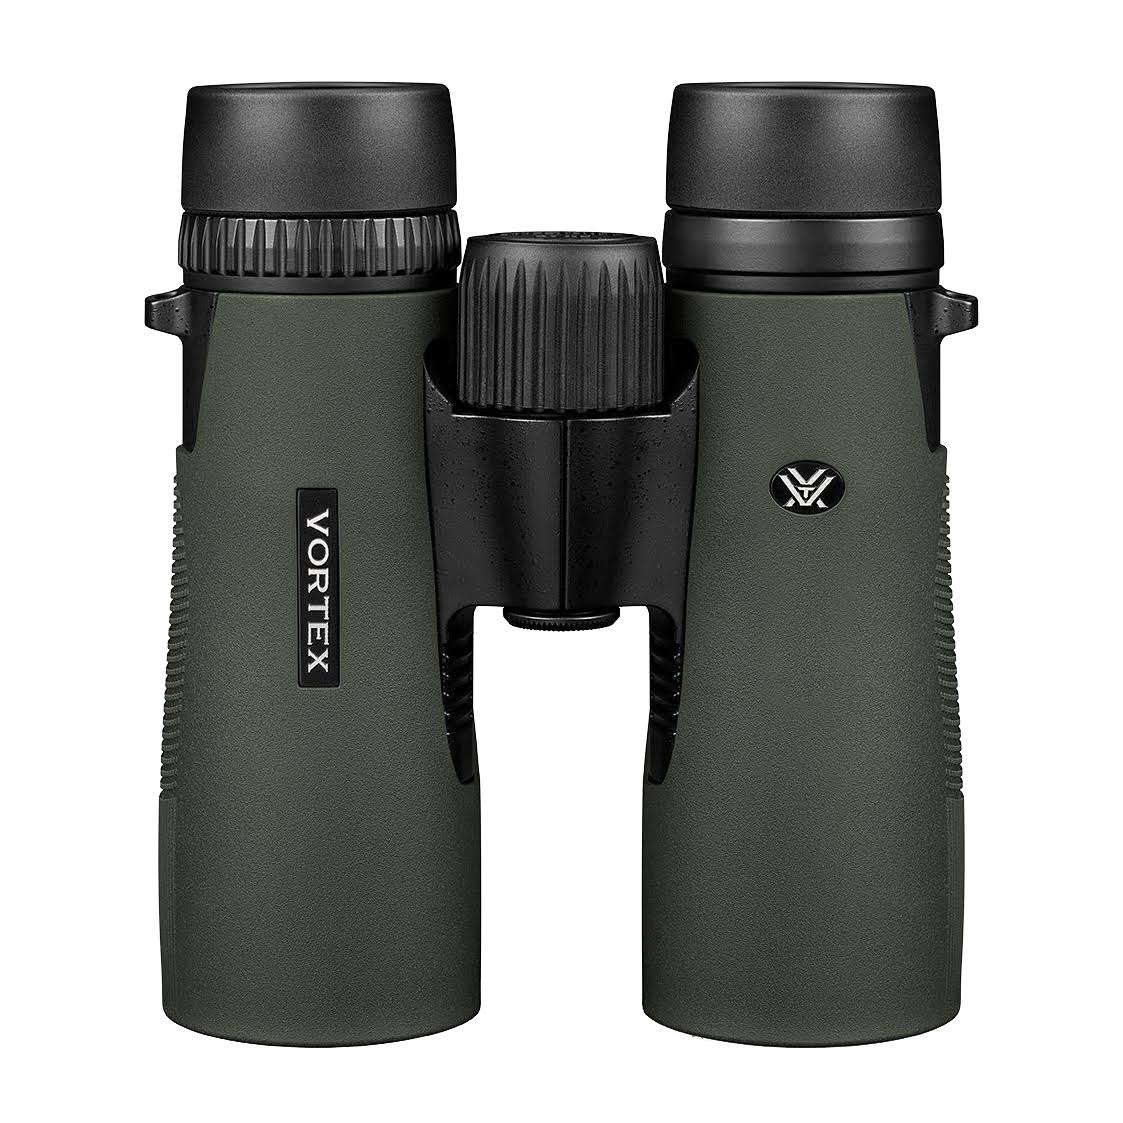 Vortex Diamondback HD Roof Prism Binoculars with GlassPak Harness Case - 8x42